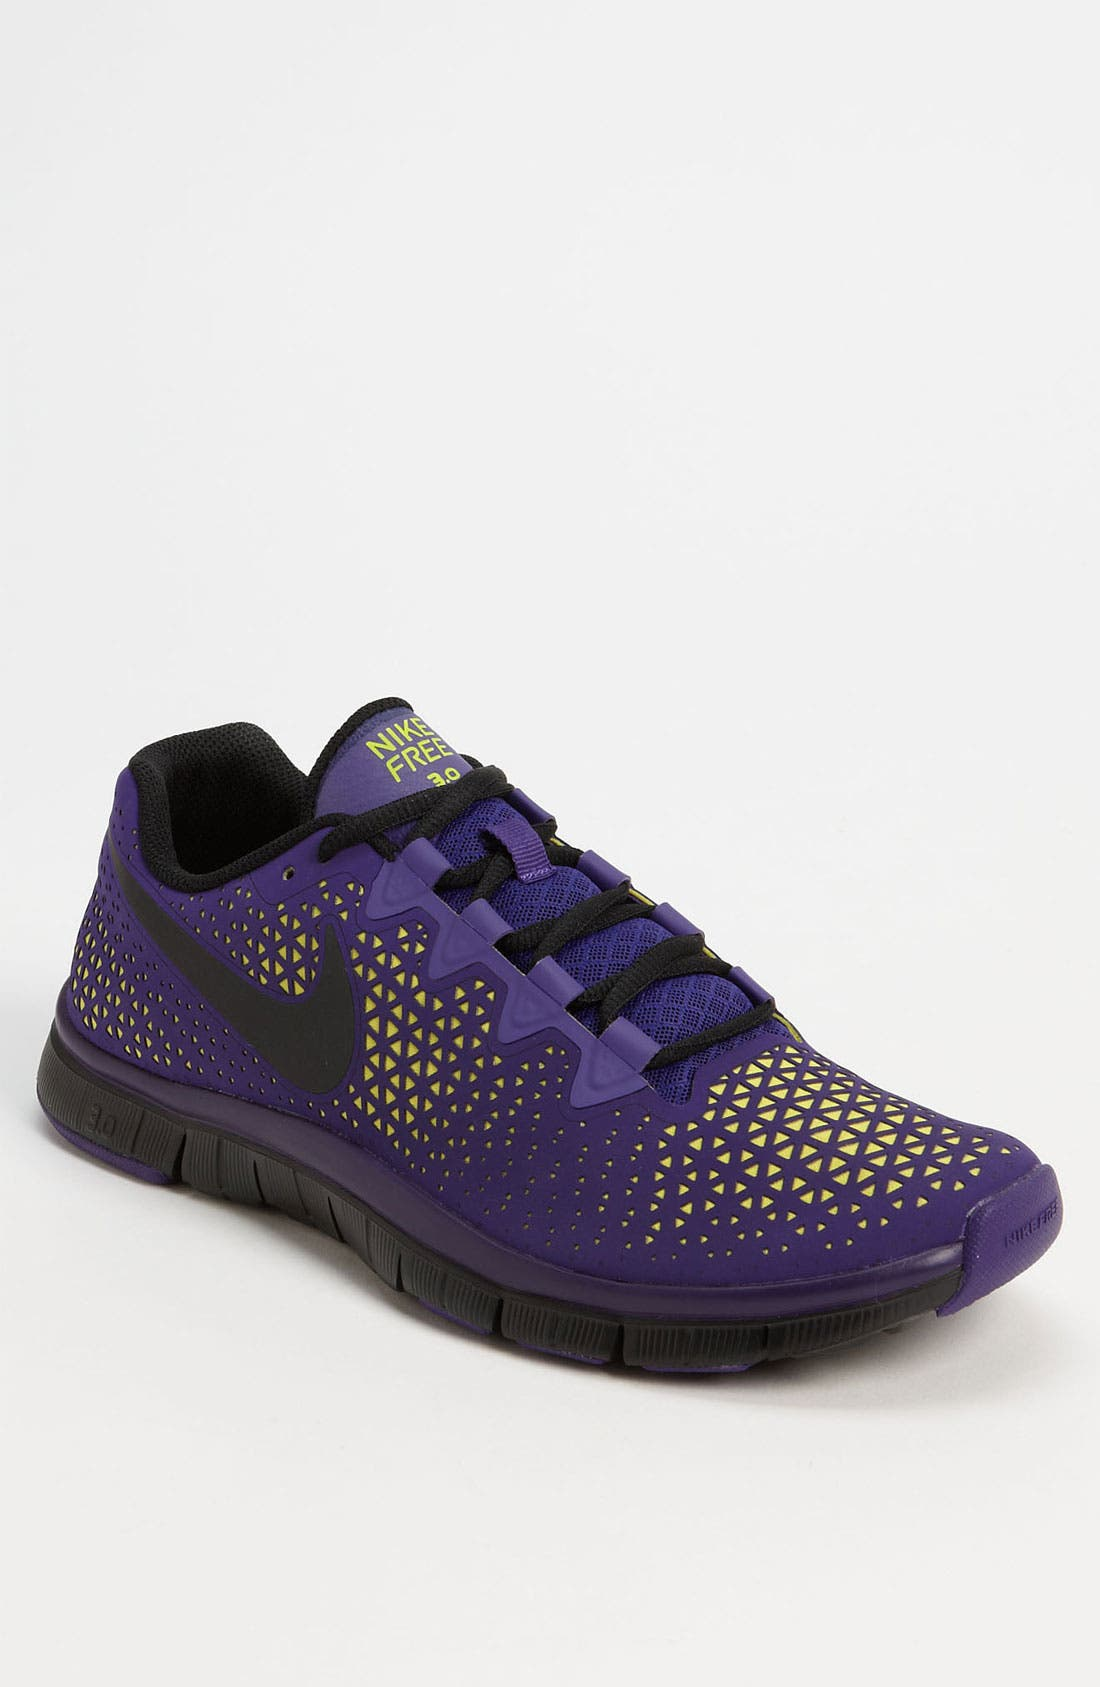 Alternate Image 1 Selected - Nike 'Free Haven 3.0' Training Shoe (Men)